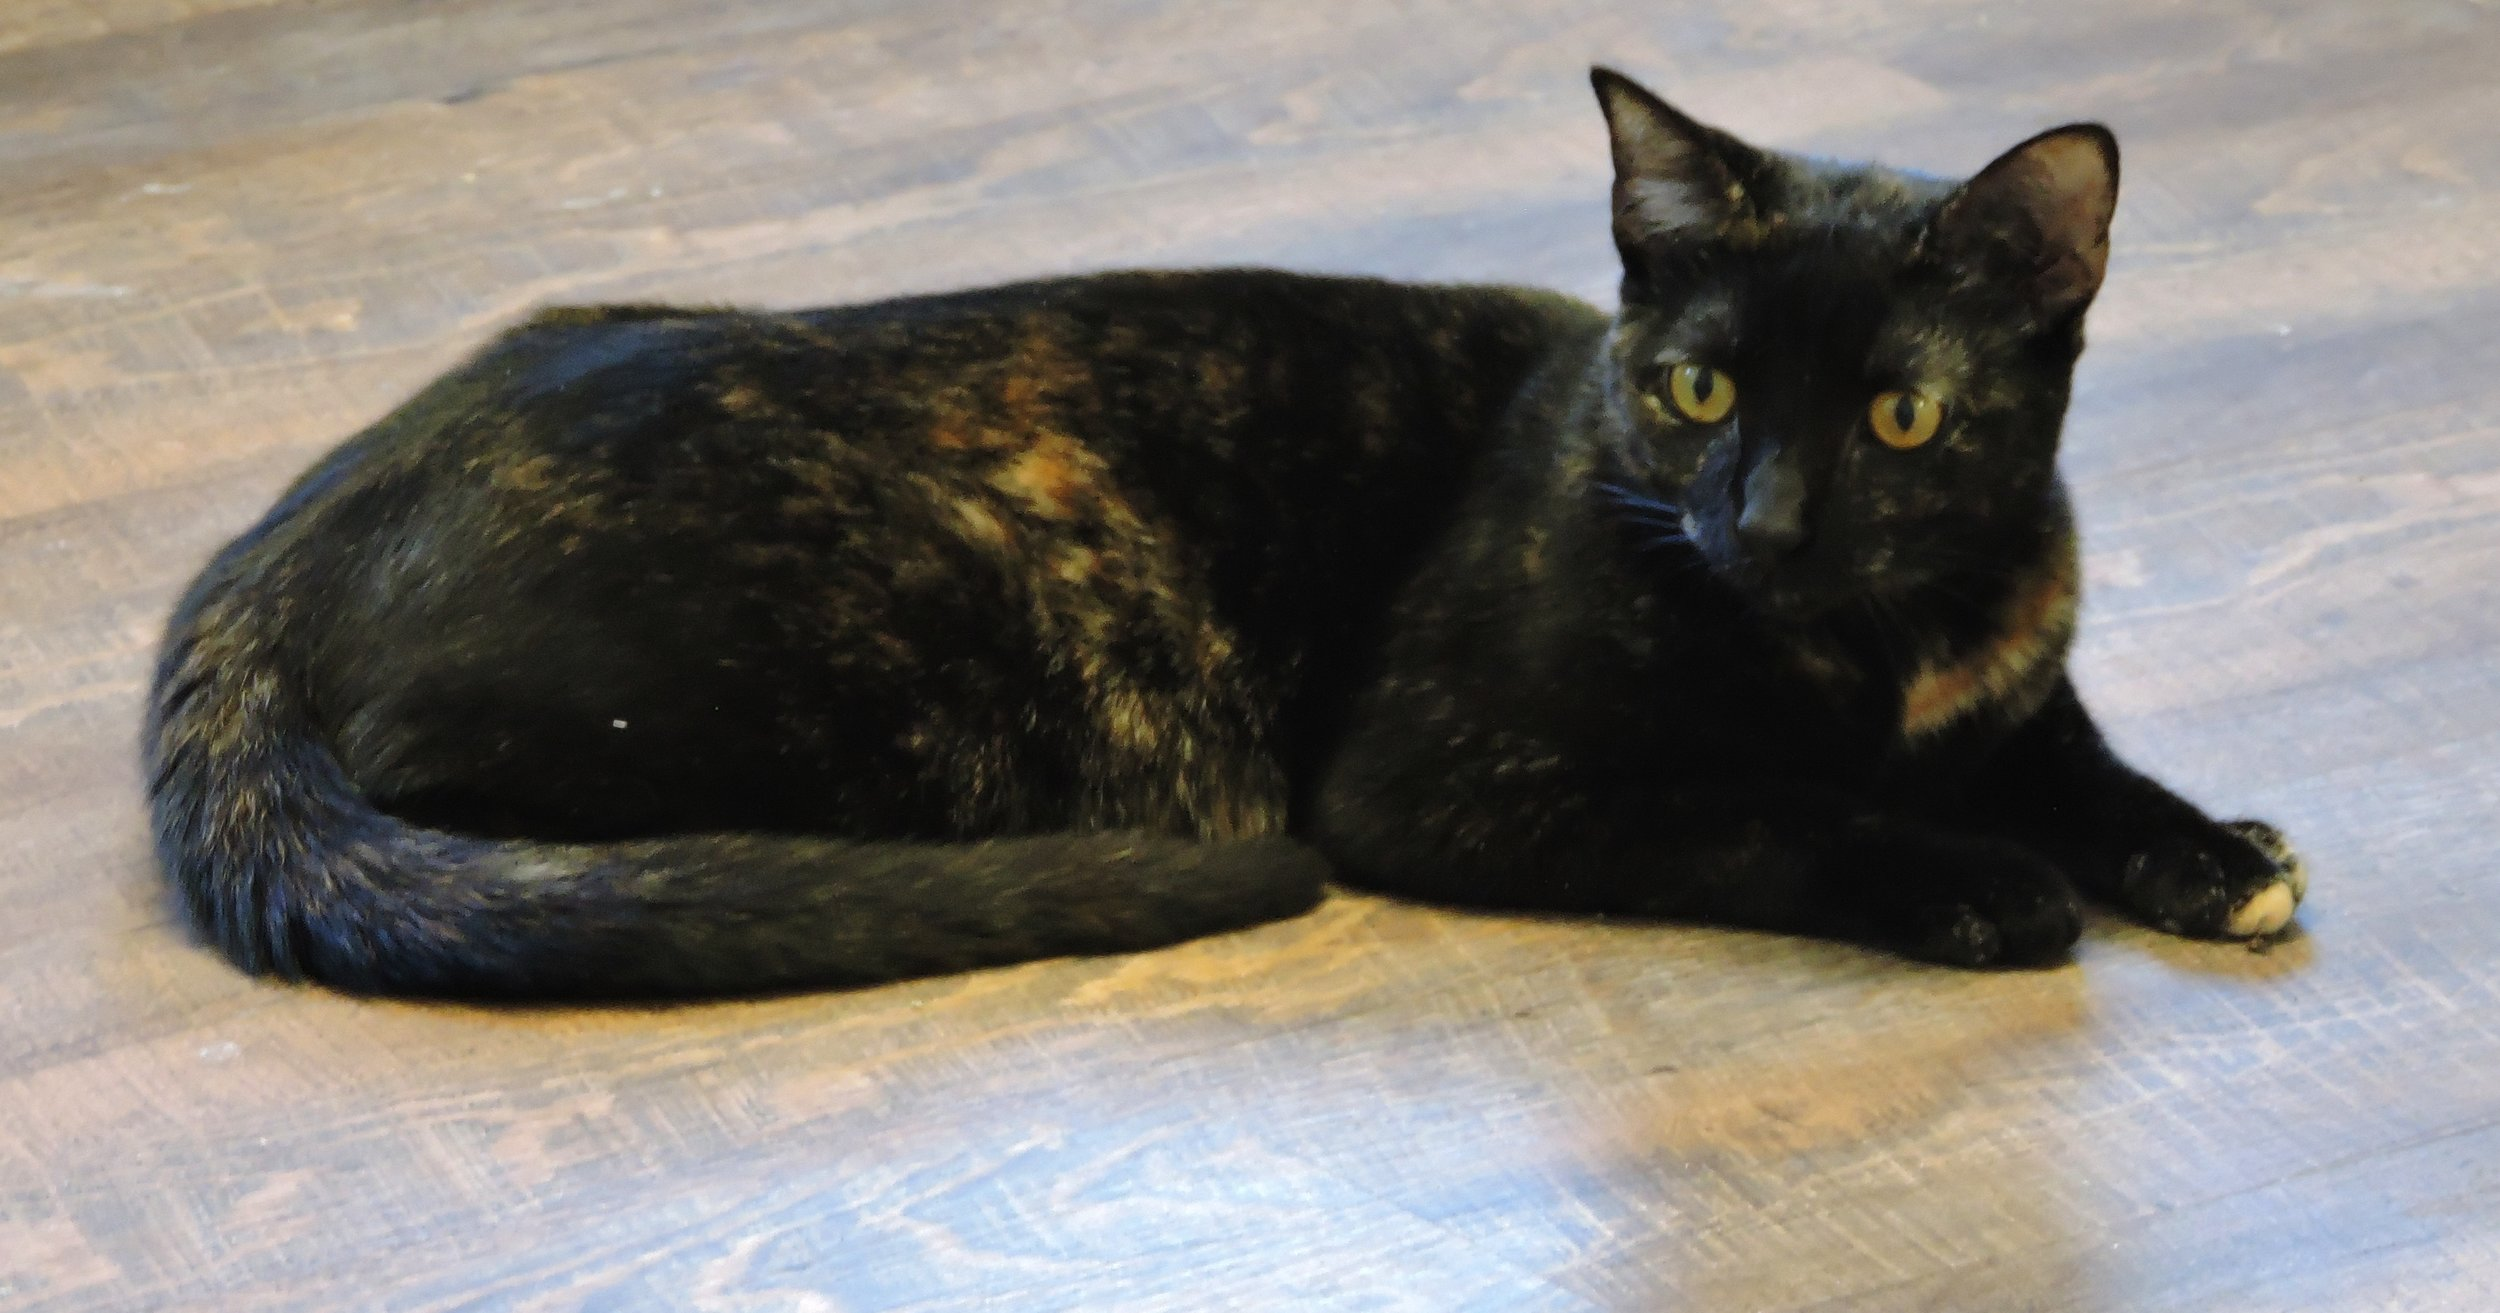 Cadence - A young tortoiseshell girl who is sweet but somewhat shy. Unlike most of the cats, she will run on the big wheel chasing a laser light! Cadence is also on KCCR's youtube channel so you can check her out. -